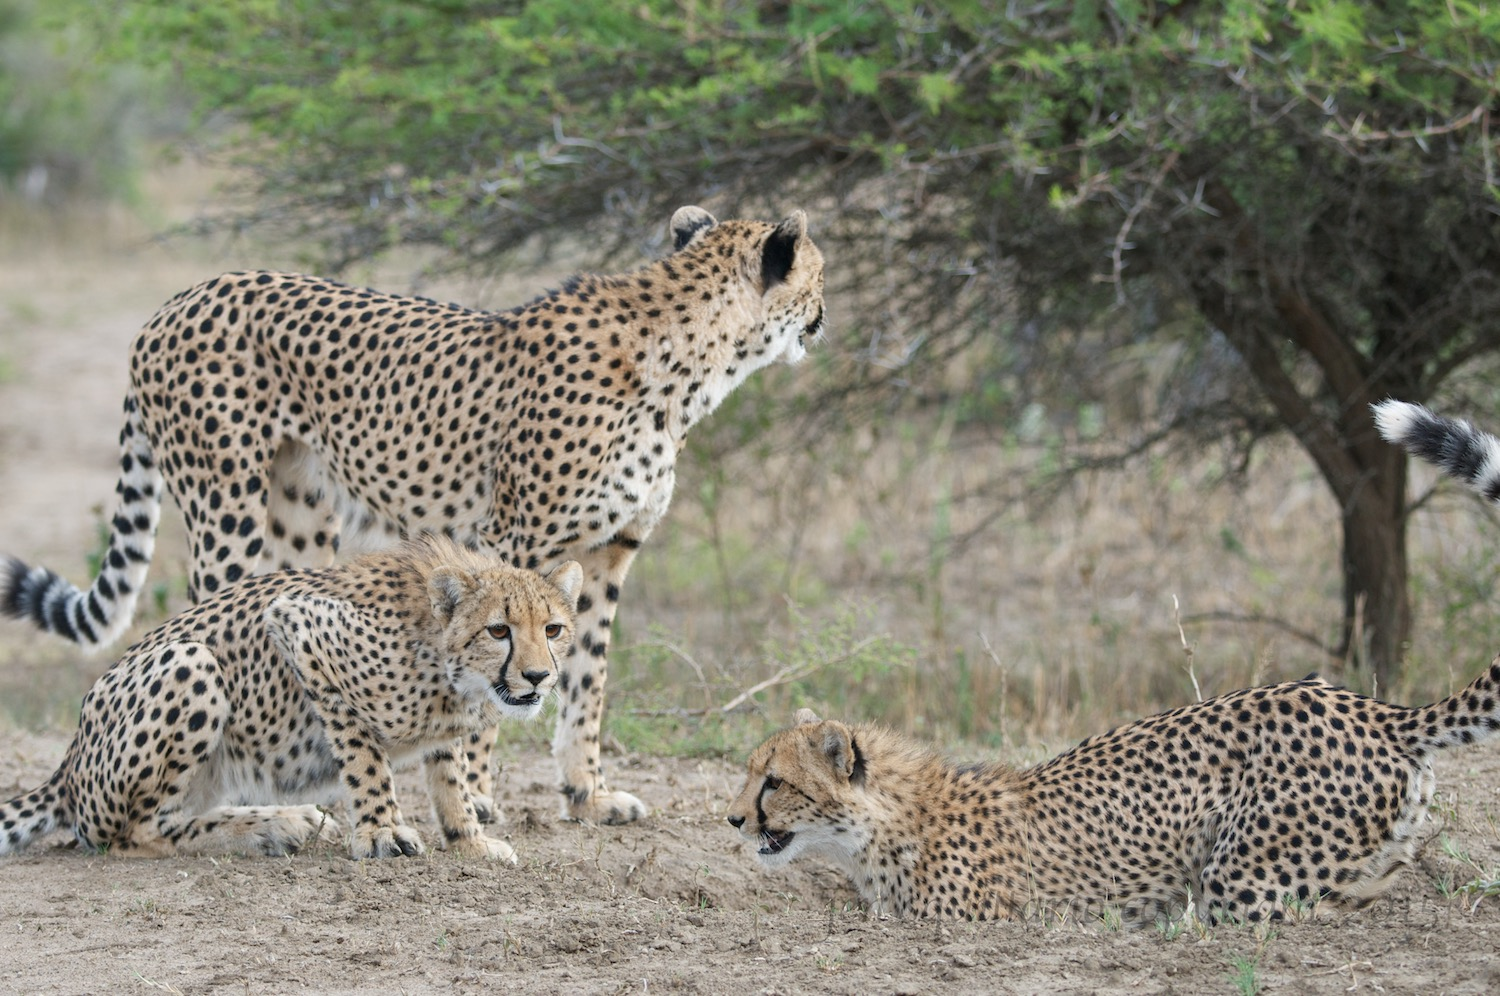 The young cheetah look down the hole for their scrub hare.